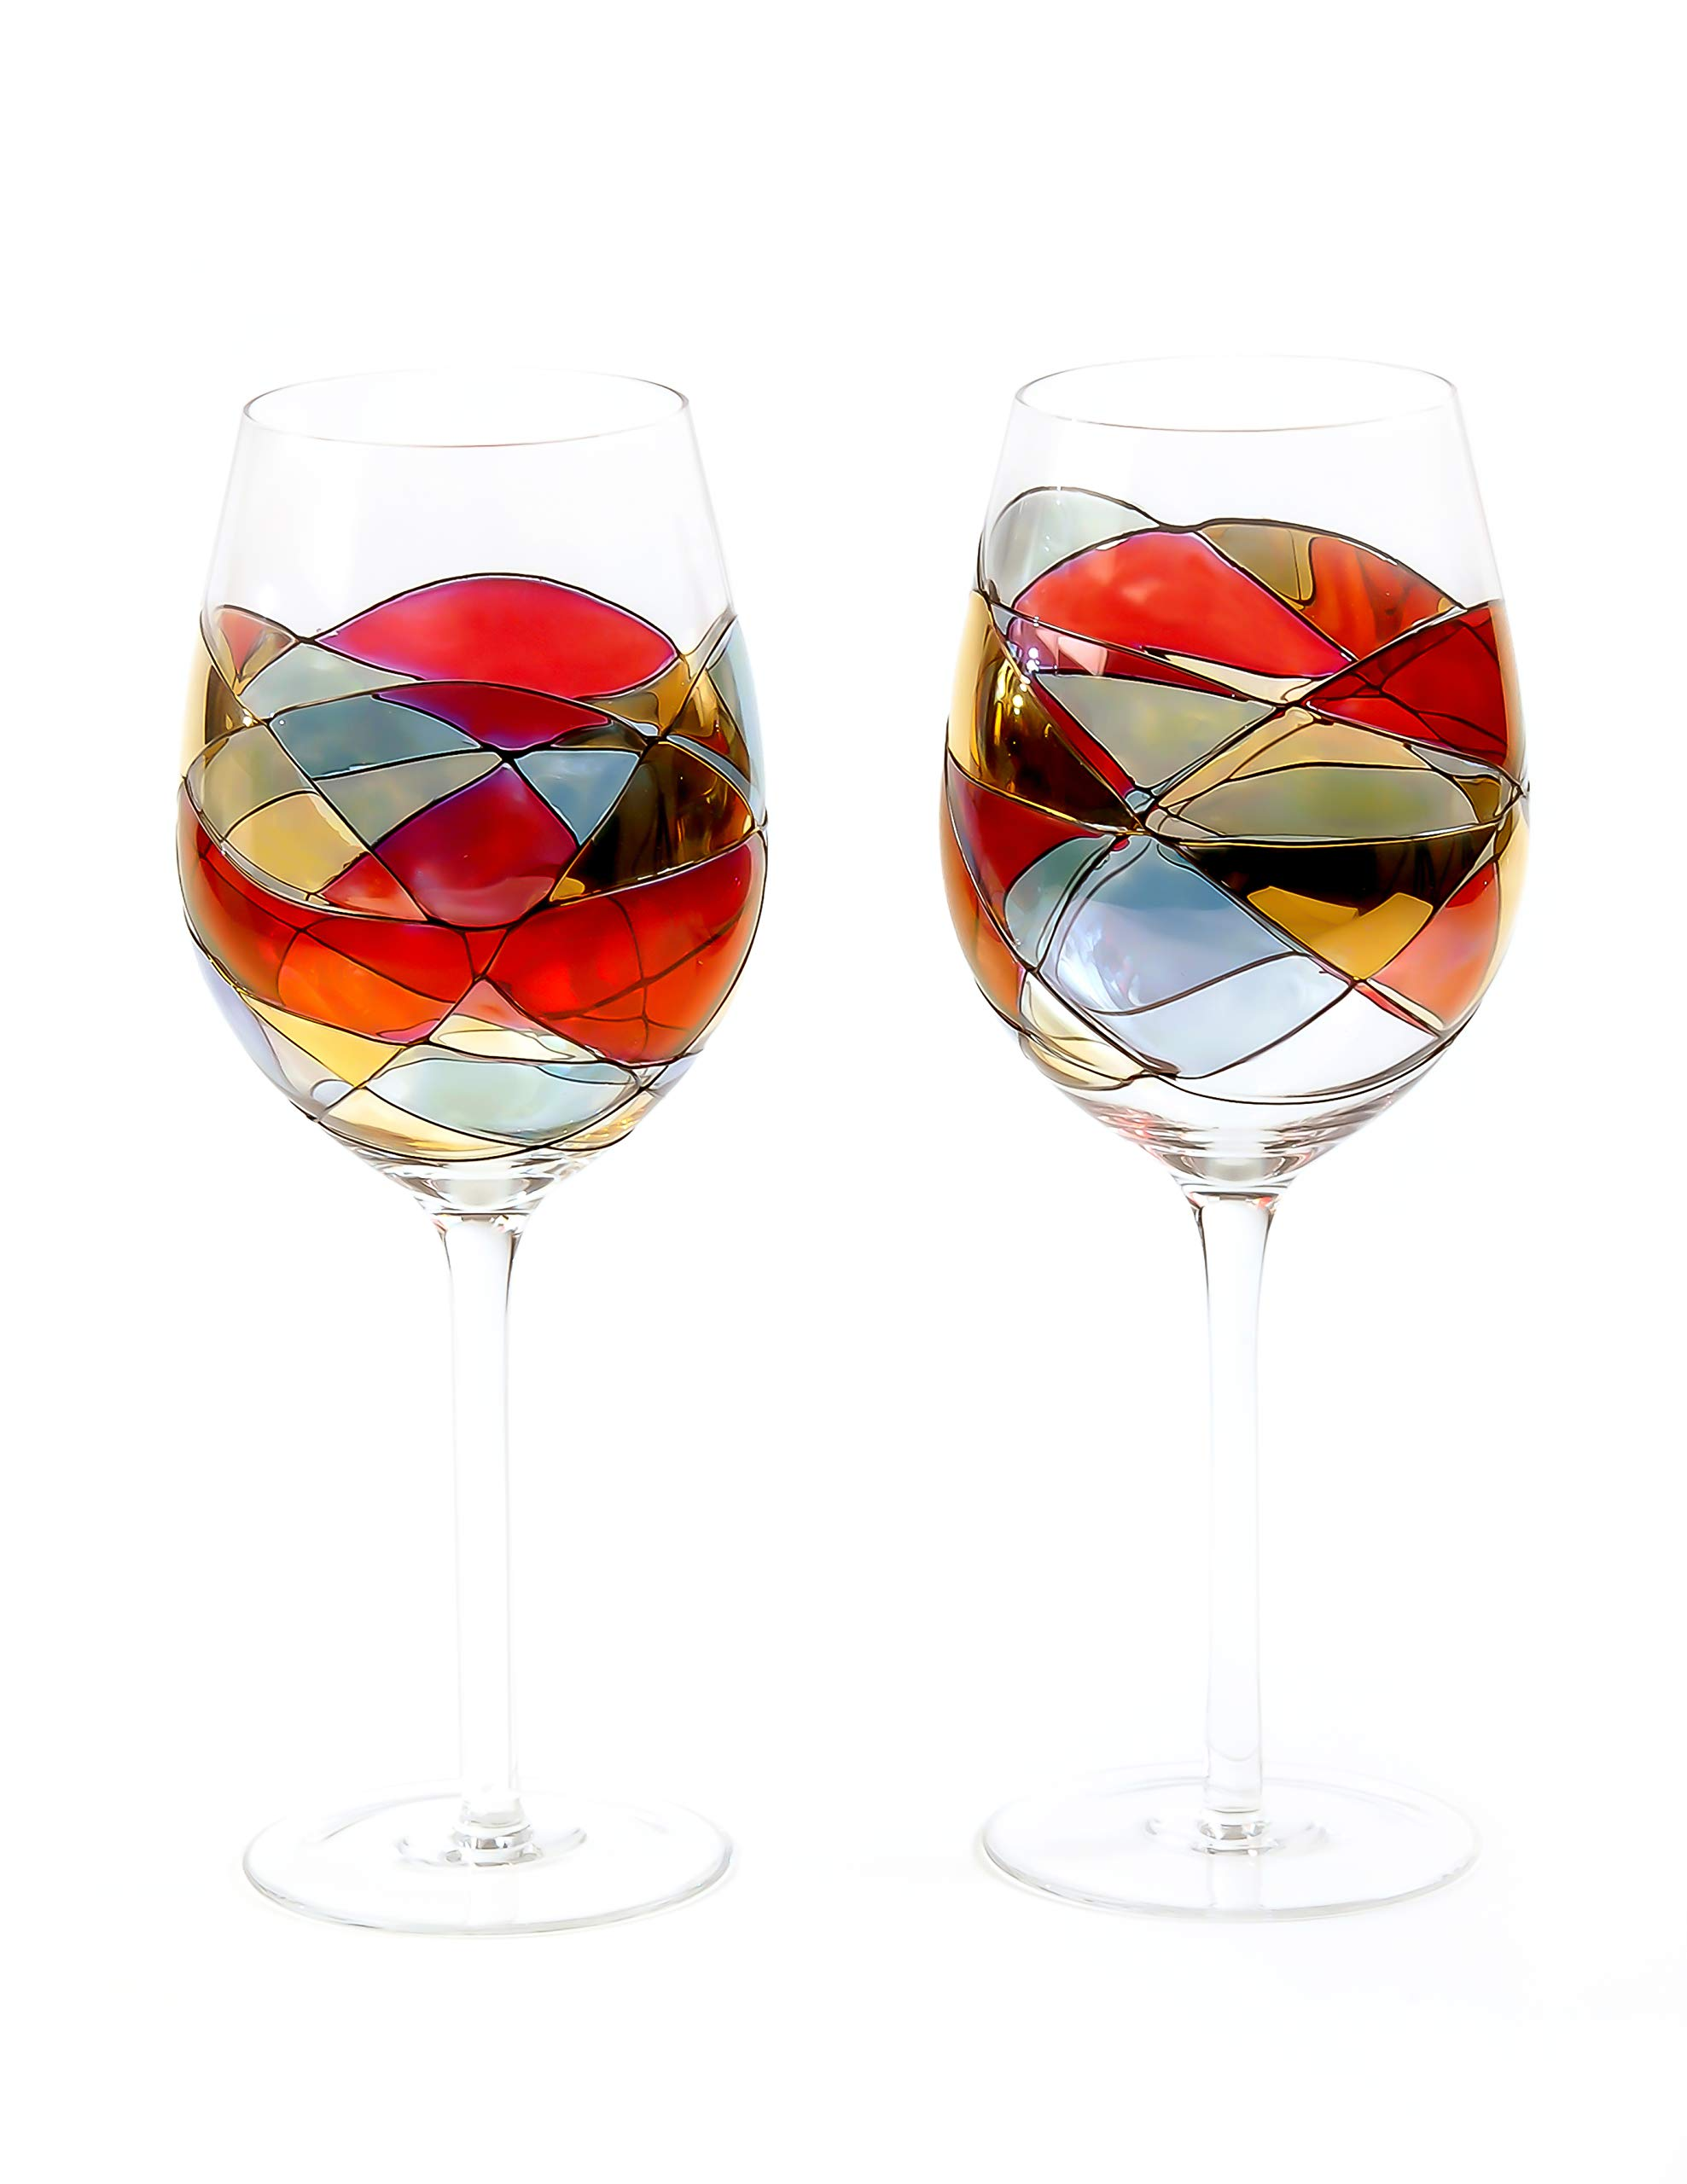 ANTONI BARCELONA Large Wine Glasses Set of 2 (29 Oz) - Handblown & Handmade, Painted Red Wine Glass, Gifts for Women, Birthdays, Anniversaries, and Weddings - 2 Units by ANTONI BARCELONA